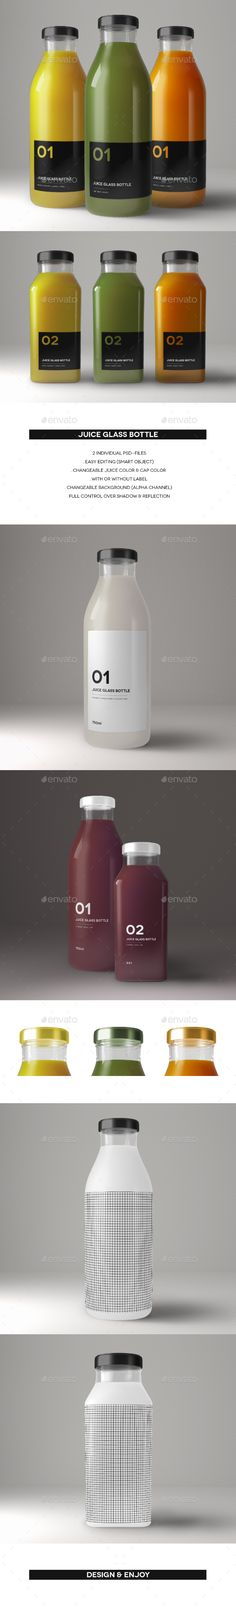 Juice Glass Bottle MockUp. Download here: http://graphicriver.net/item/juice-glass-bottle/16121883?ref=ksioks